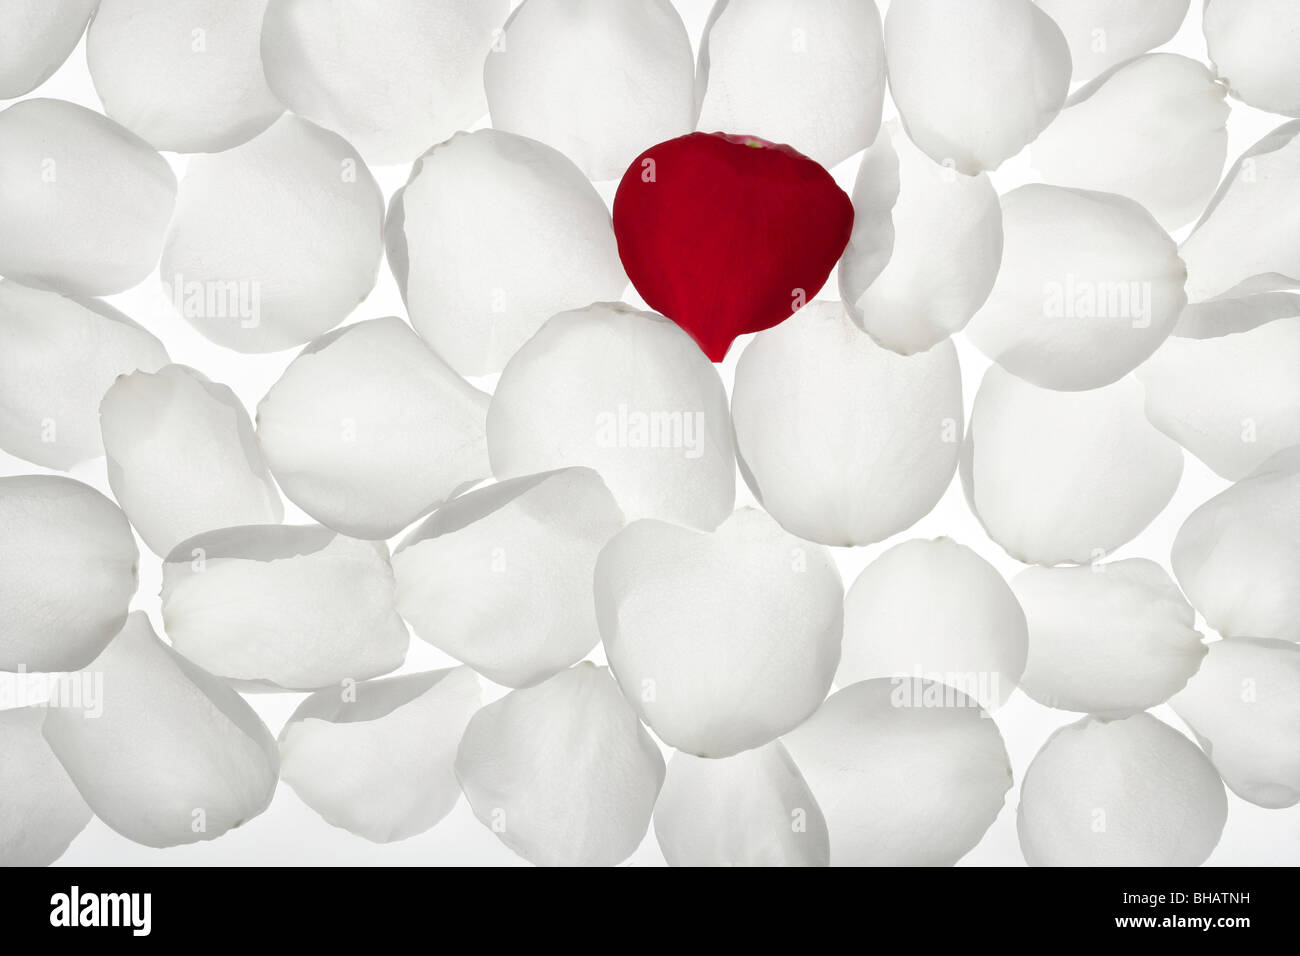 Unique Alone Red Rose Petal Between White Pattern Tranparent Wallpaper